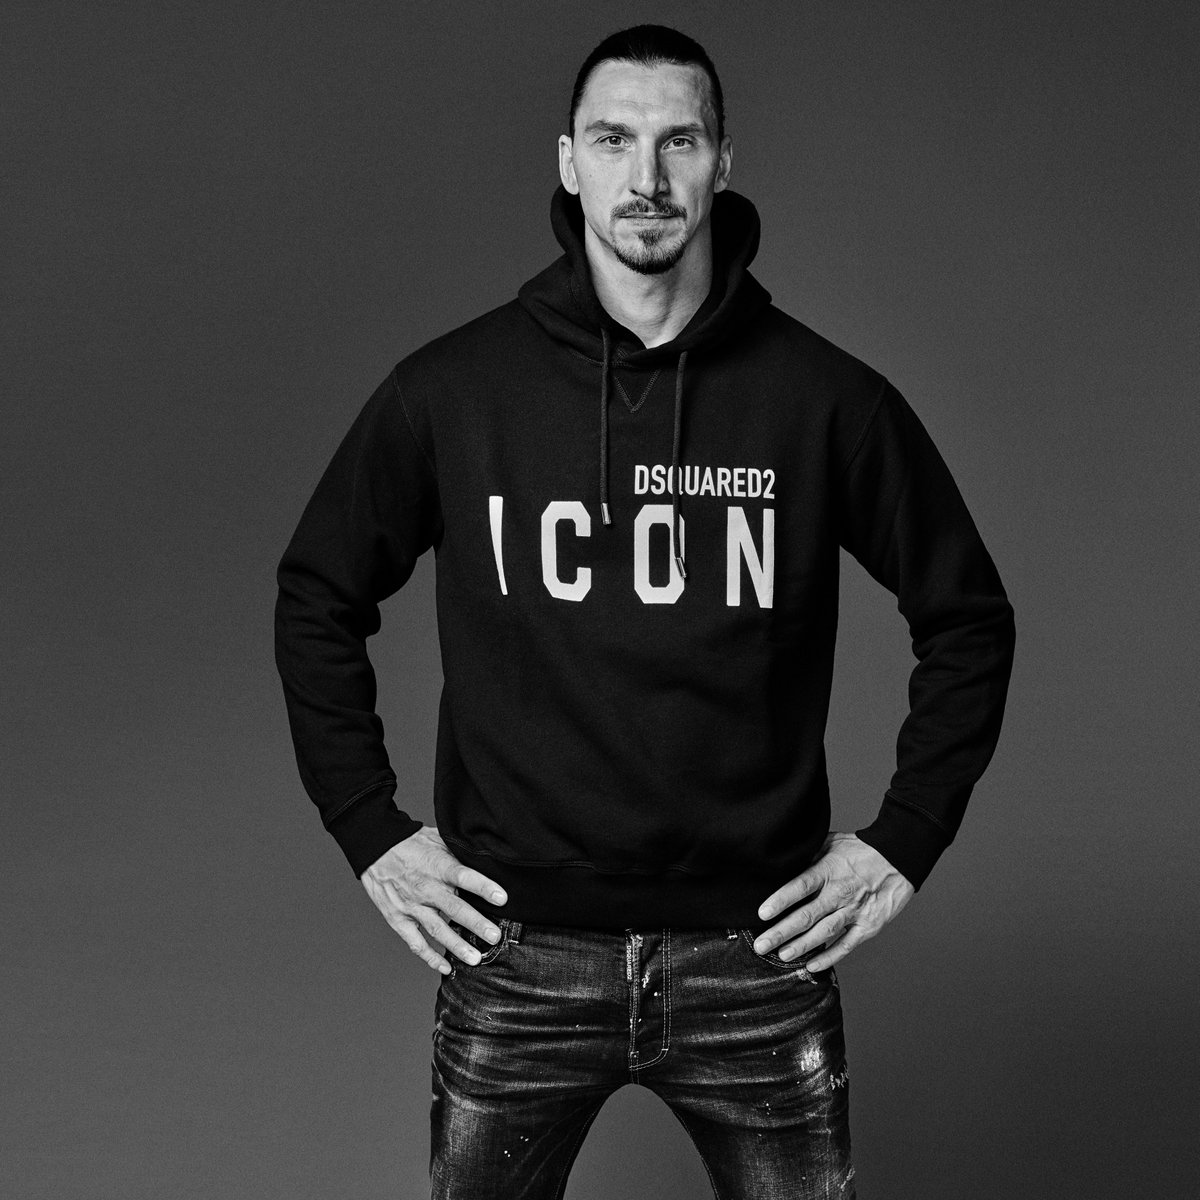 #D2xIBRA: 'I have never won silvers, only lost gold' @Ibra_official  – The new capsule is out now 🔥 Discover the collection  #Dsquared2 Talent: @Ibra_official  Photographer: Giampaolo Sgura @ Chris Boals Artists Styling: Dean and Dan Caten